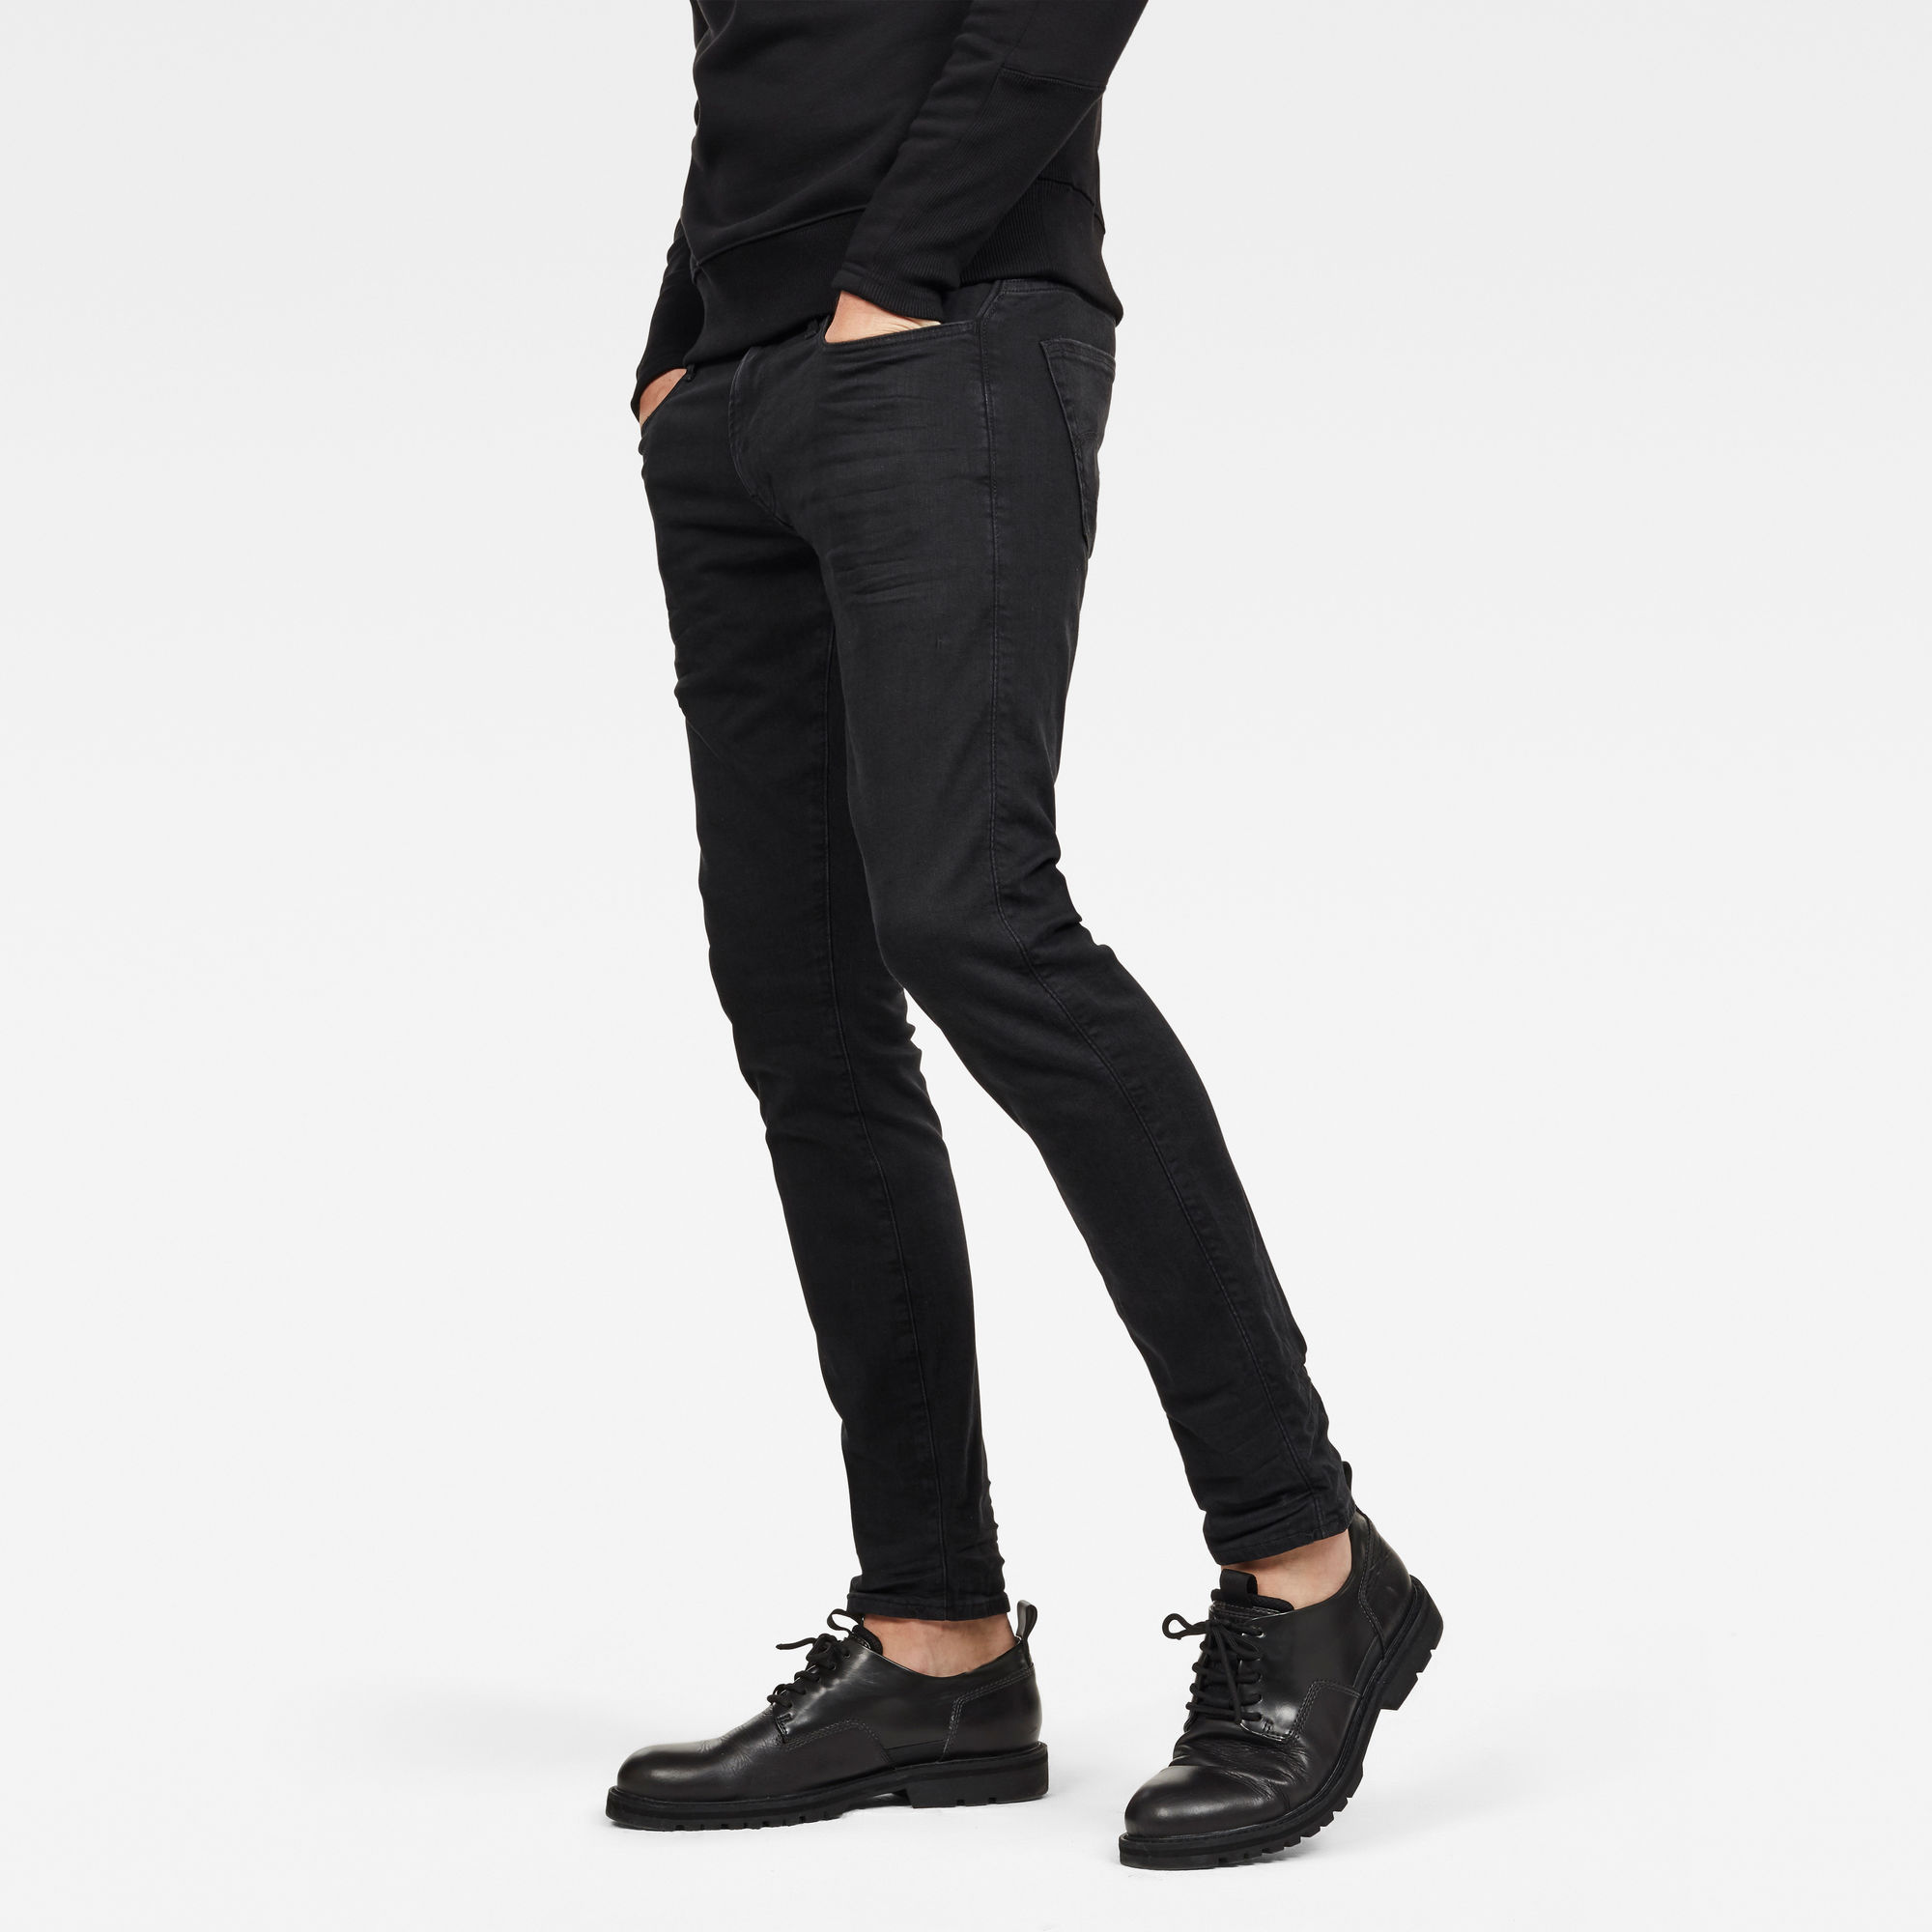 Image of G Star Raw 3301 Deconstructed Skinny Jeans